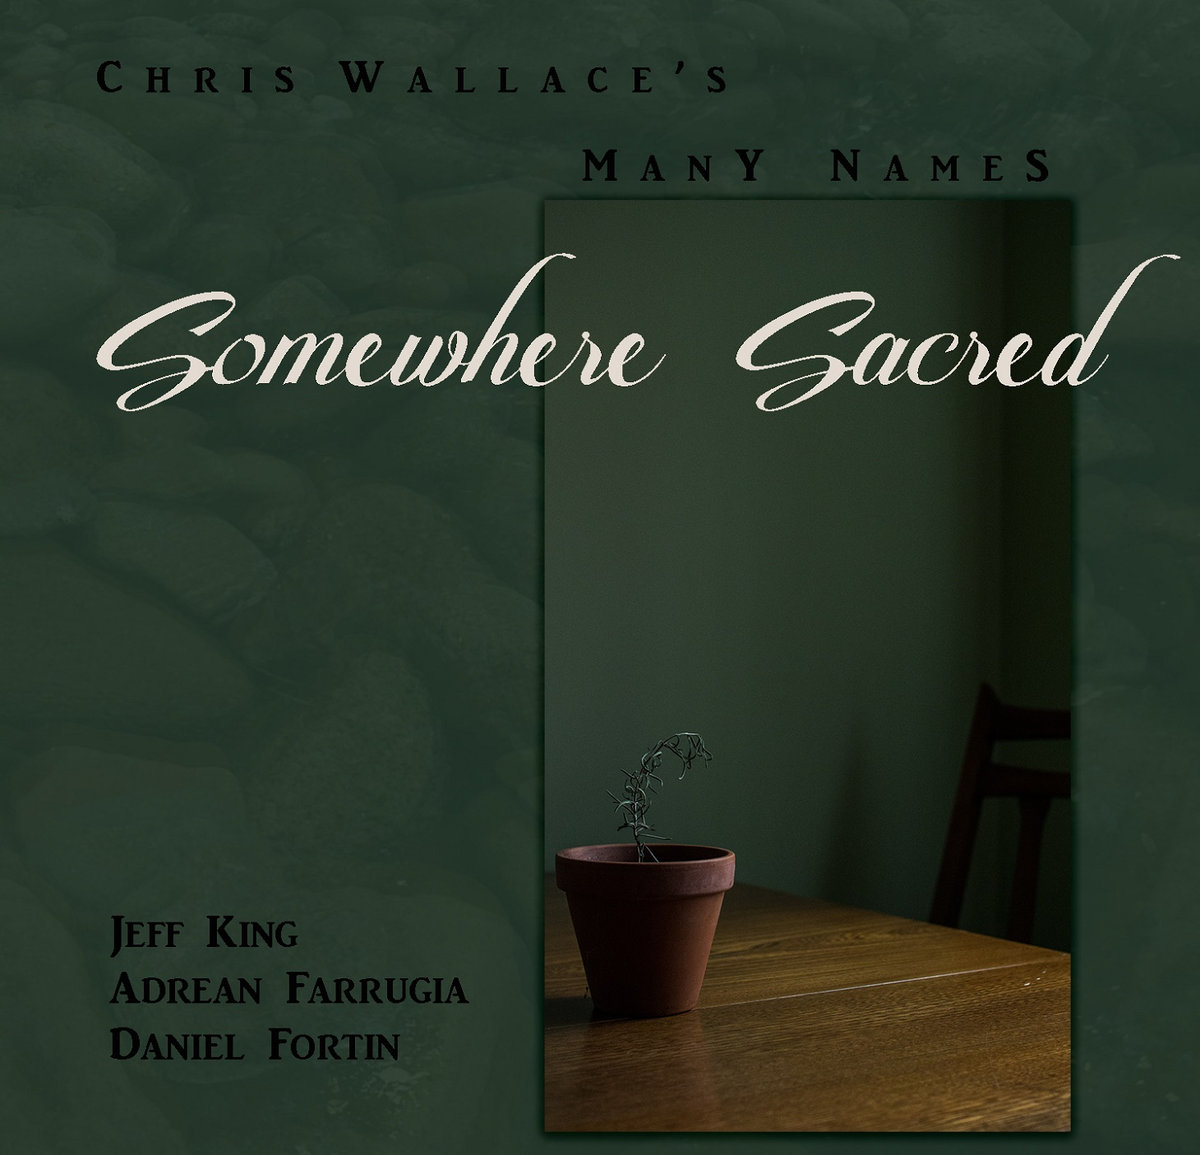 https://chriswallace.bandcamp.com/track/somewhere-sacred